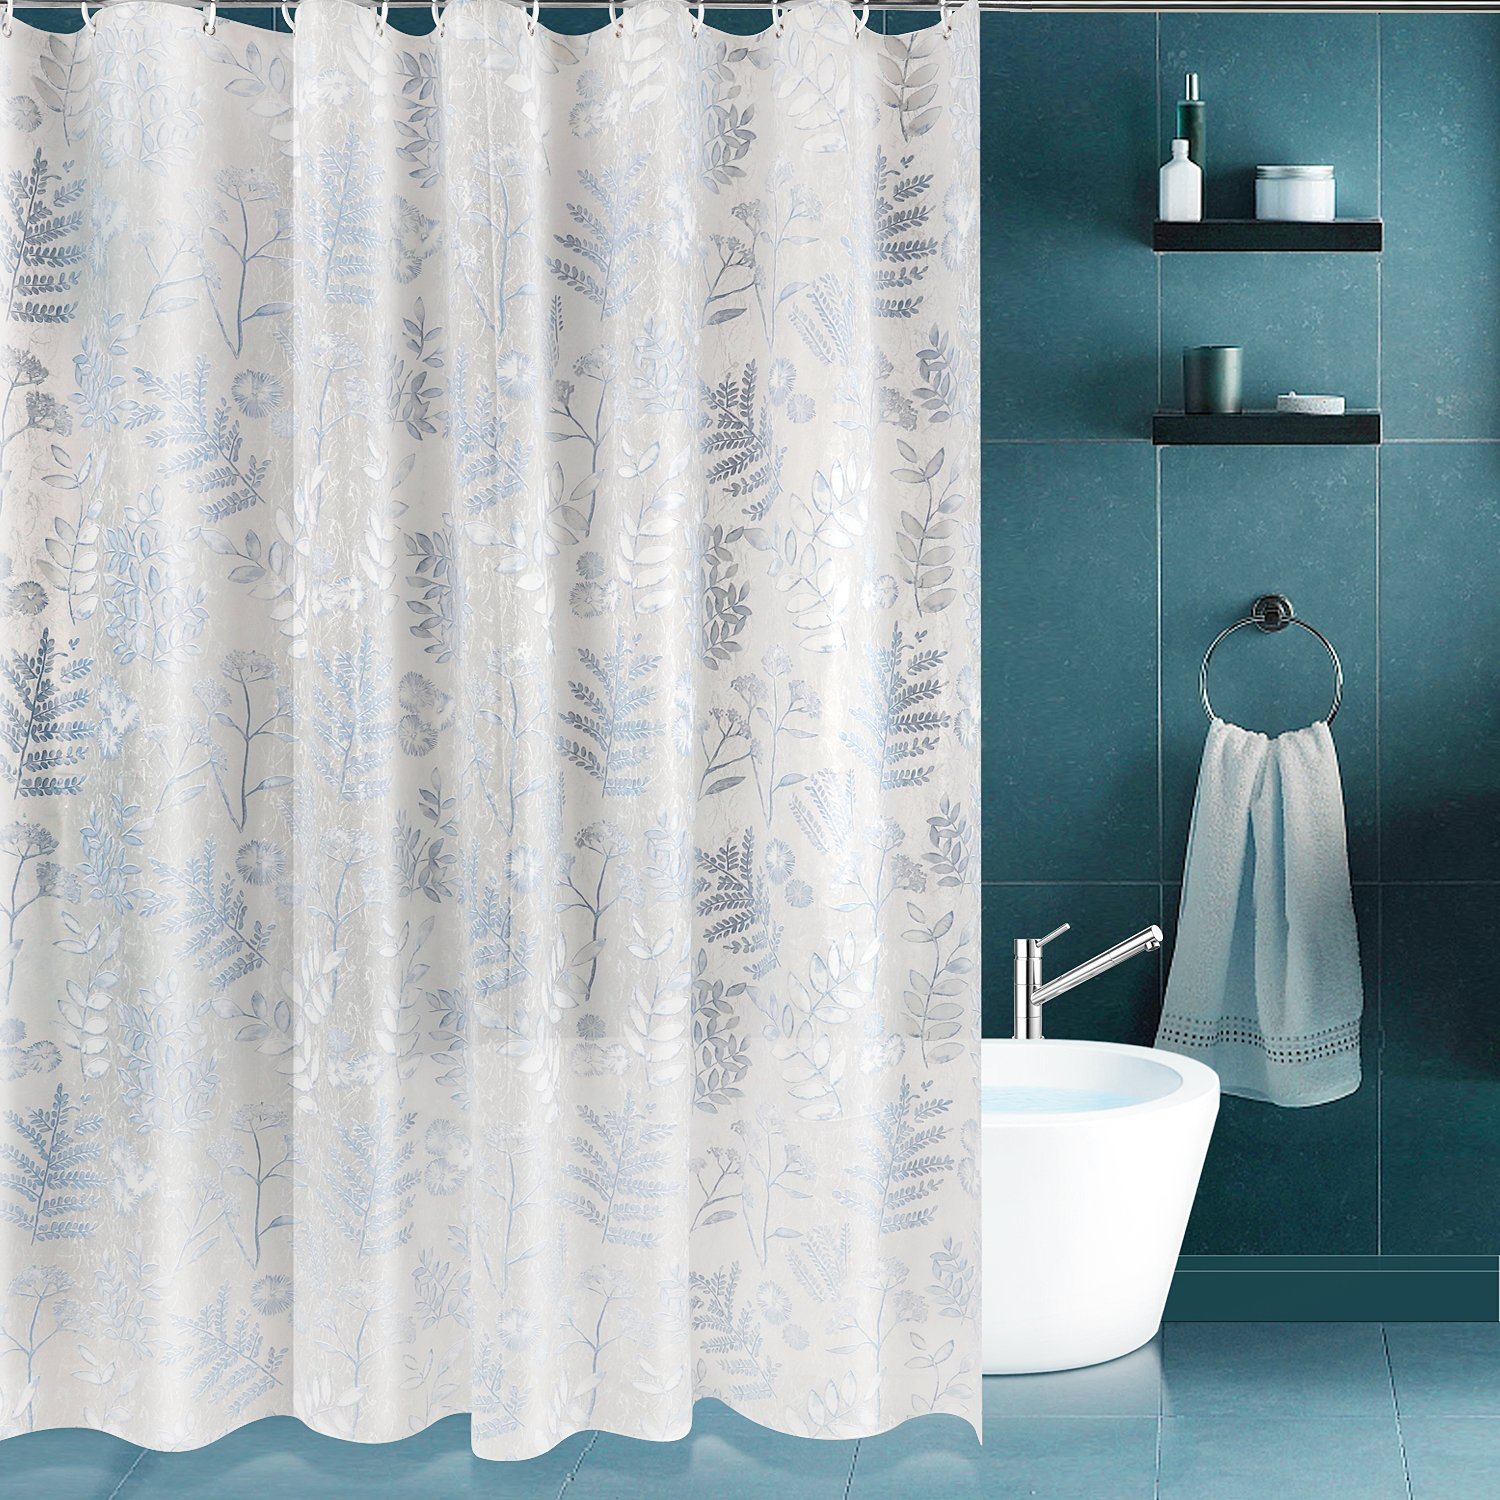 SPARIN Shower Curtain Anti Mold Bacterial EVA Waterproof Bathroom Blue 3D Effect